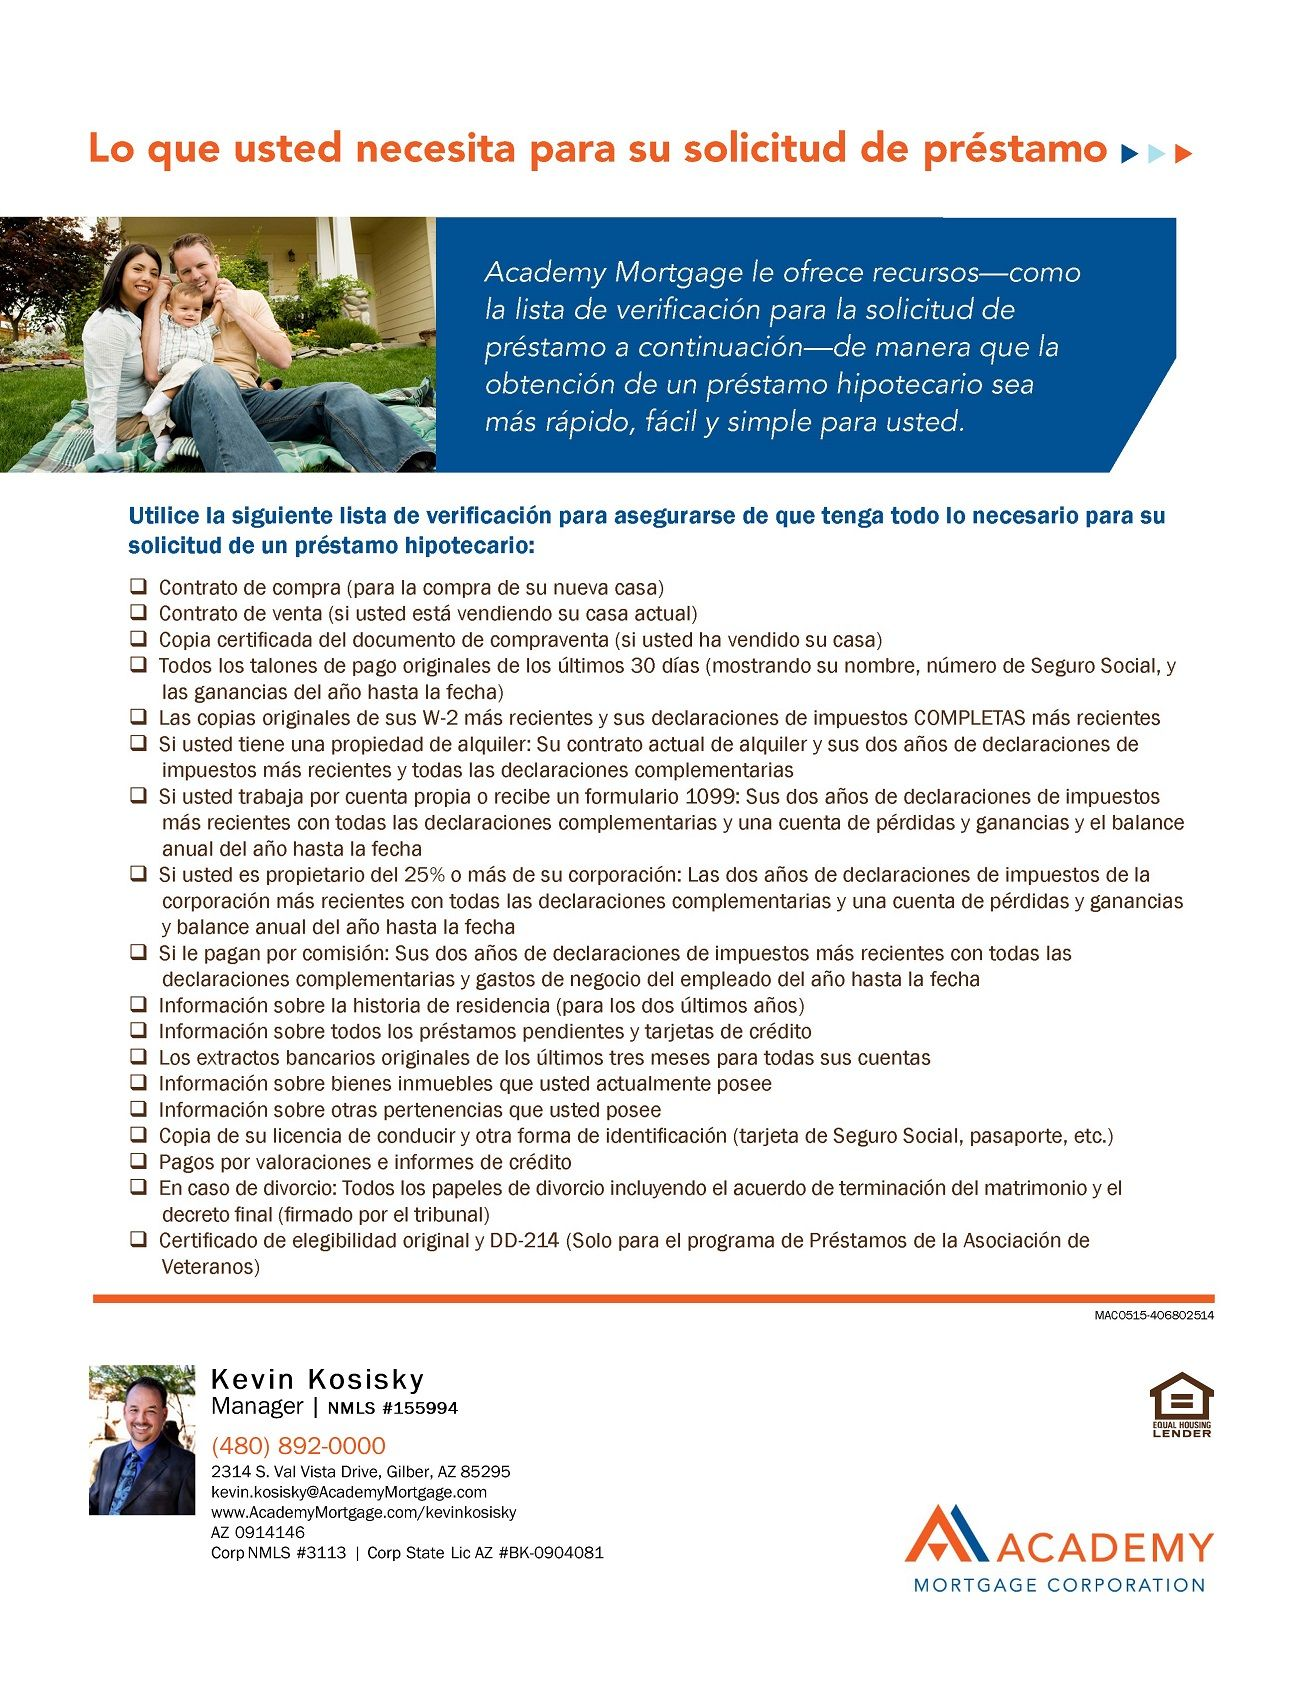 House cleaning checklist in spanish - Loan Application Process Checklist Spanish